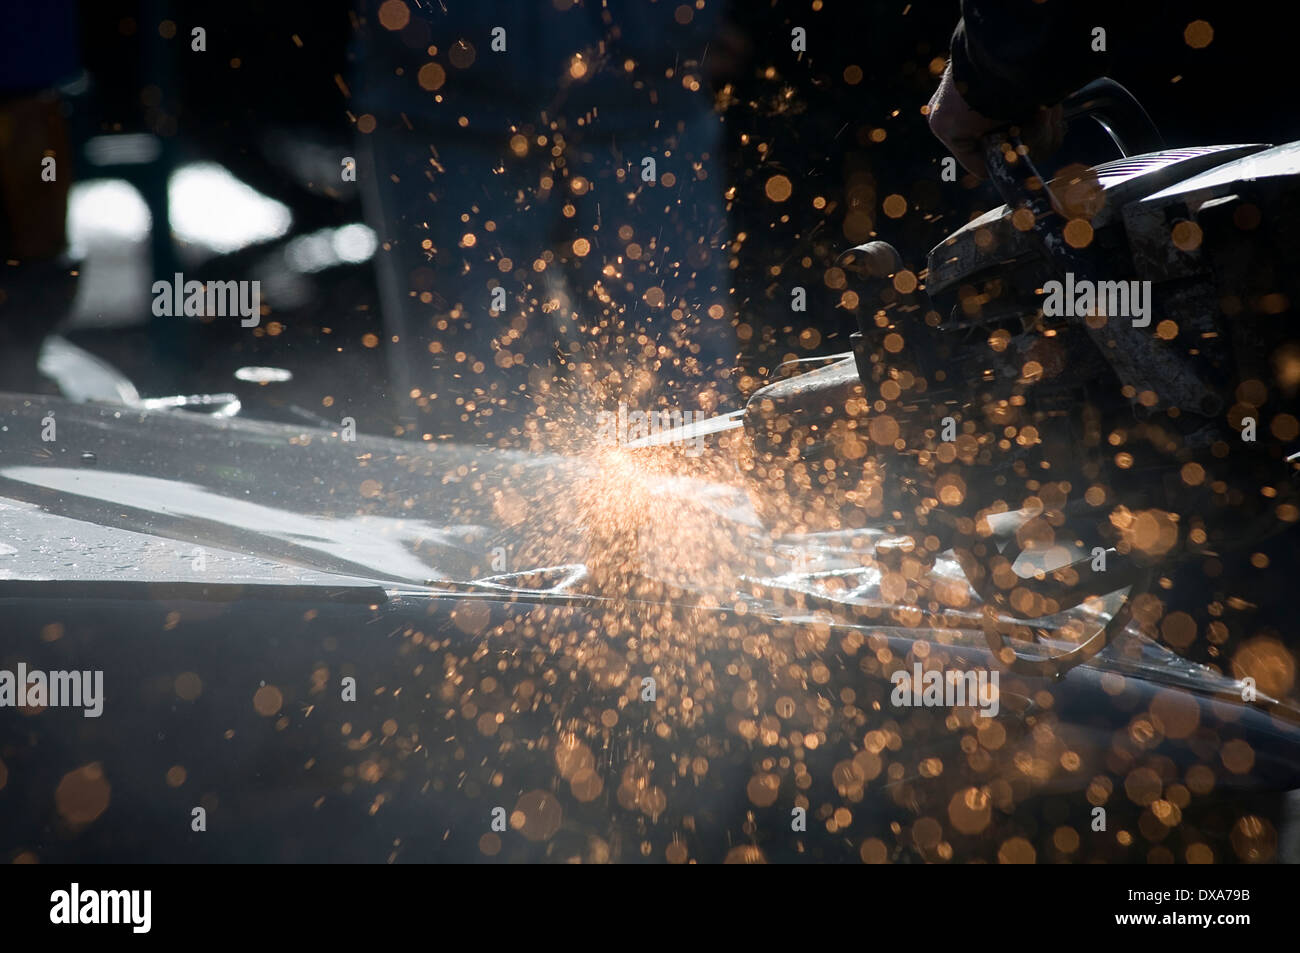 disk cutter cutting wheel angle grinder grinding cut steel metal sparks spark flying spray spraying of stihl saw Stock Photo